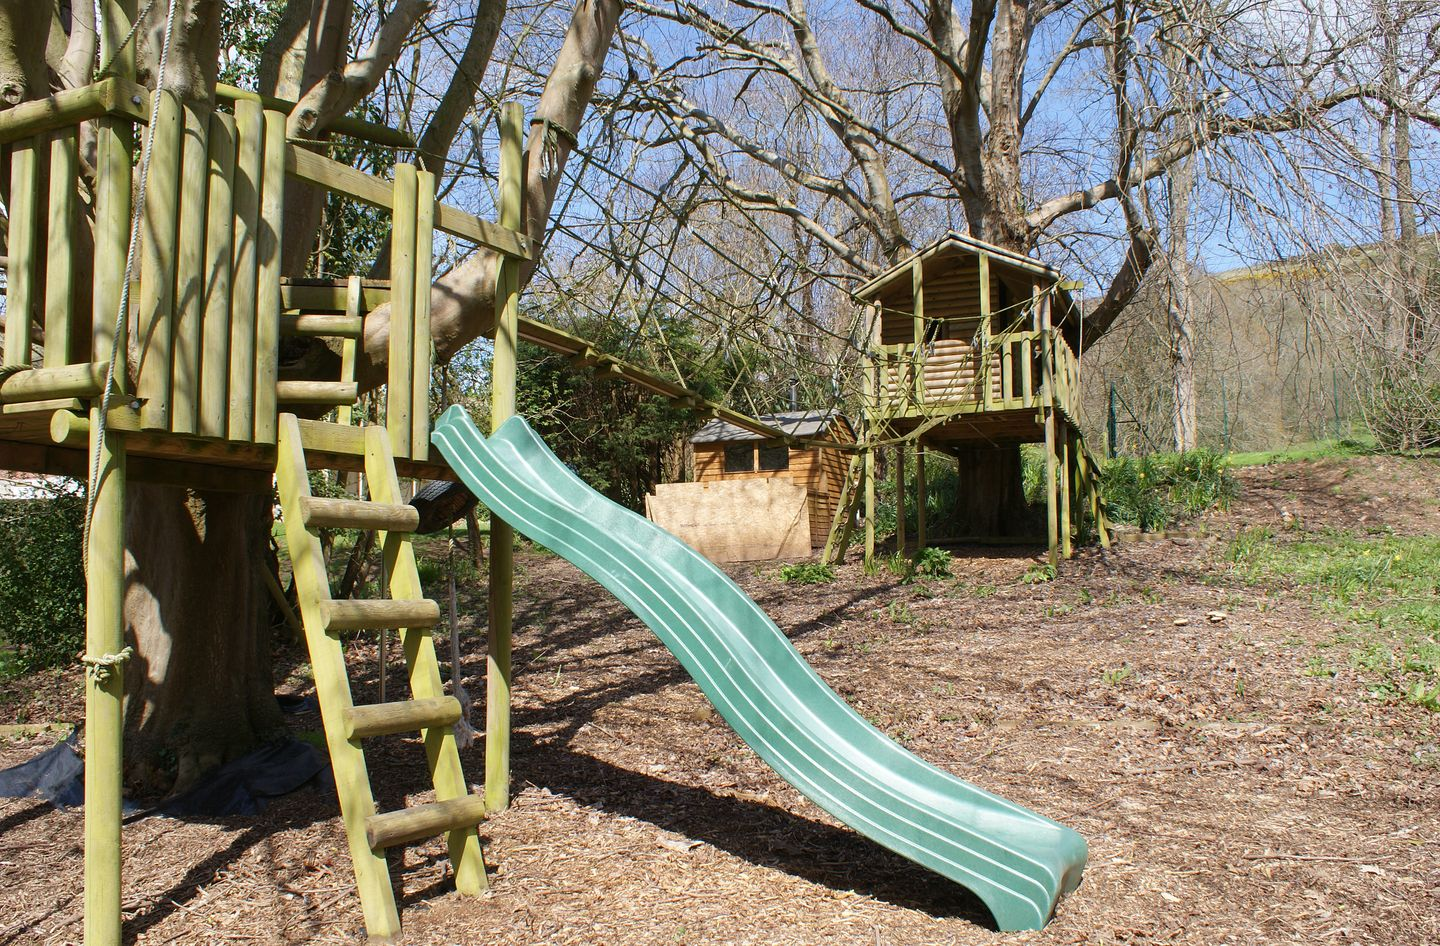 Compton House Play Area In Woods